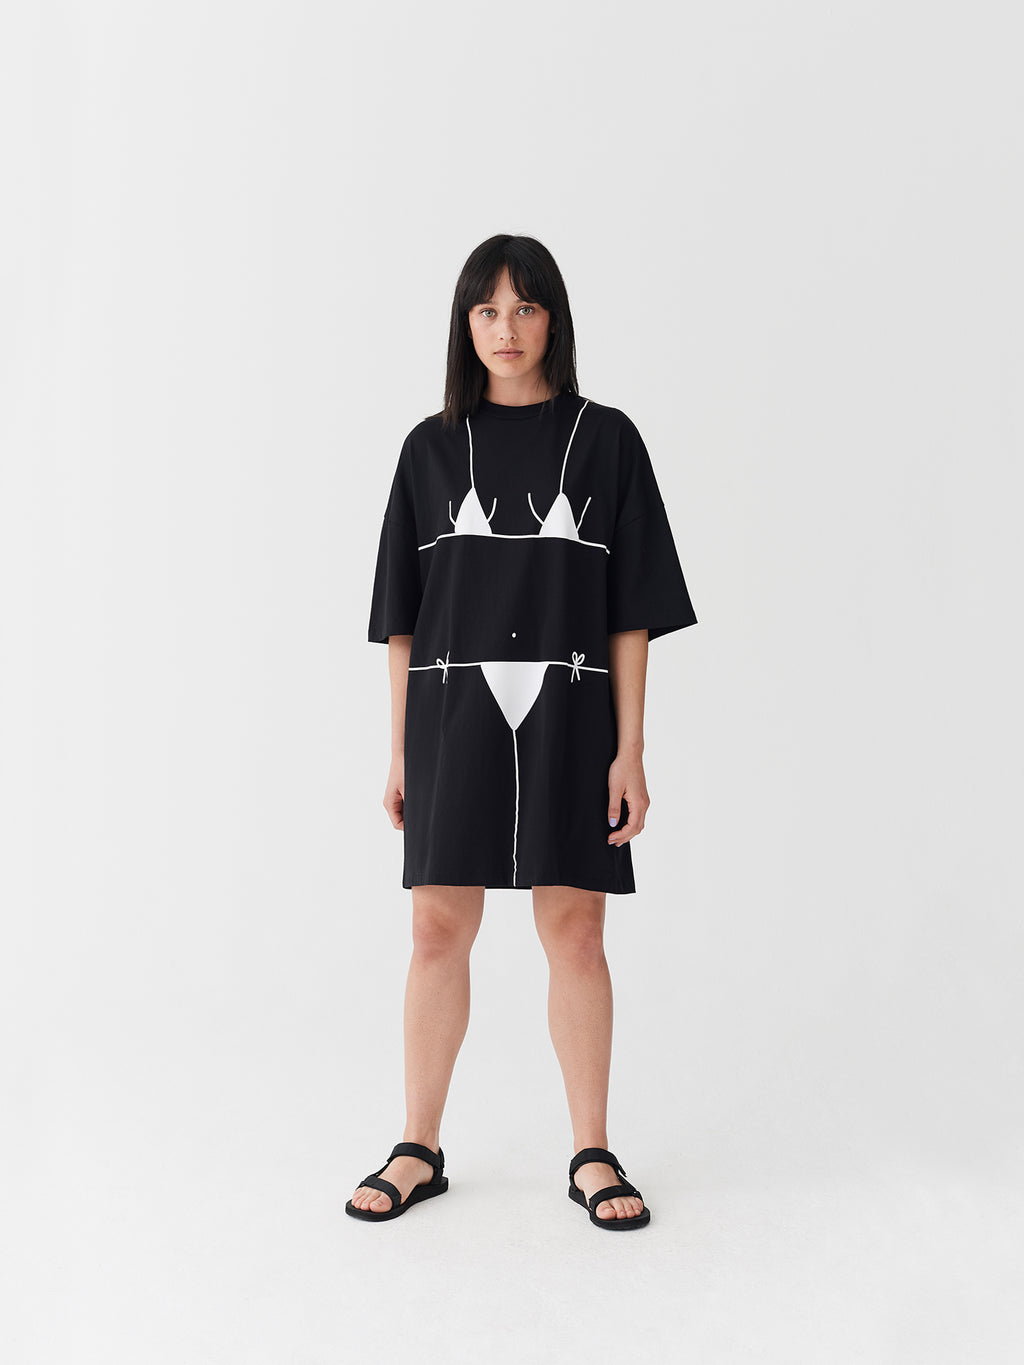 Lazy Oaf Beach Bum Black T-Shirt Dress